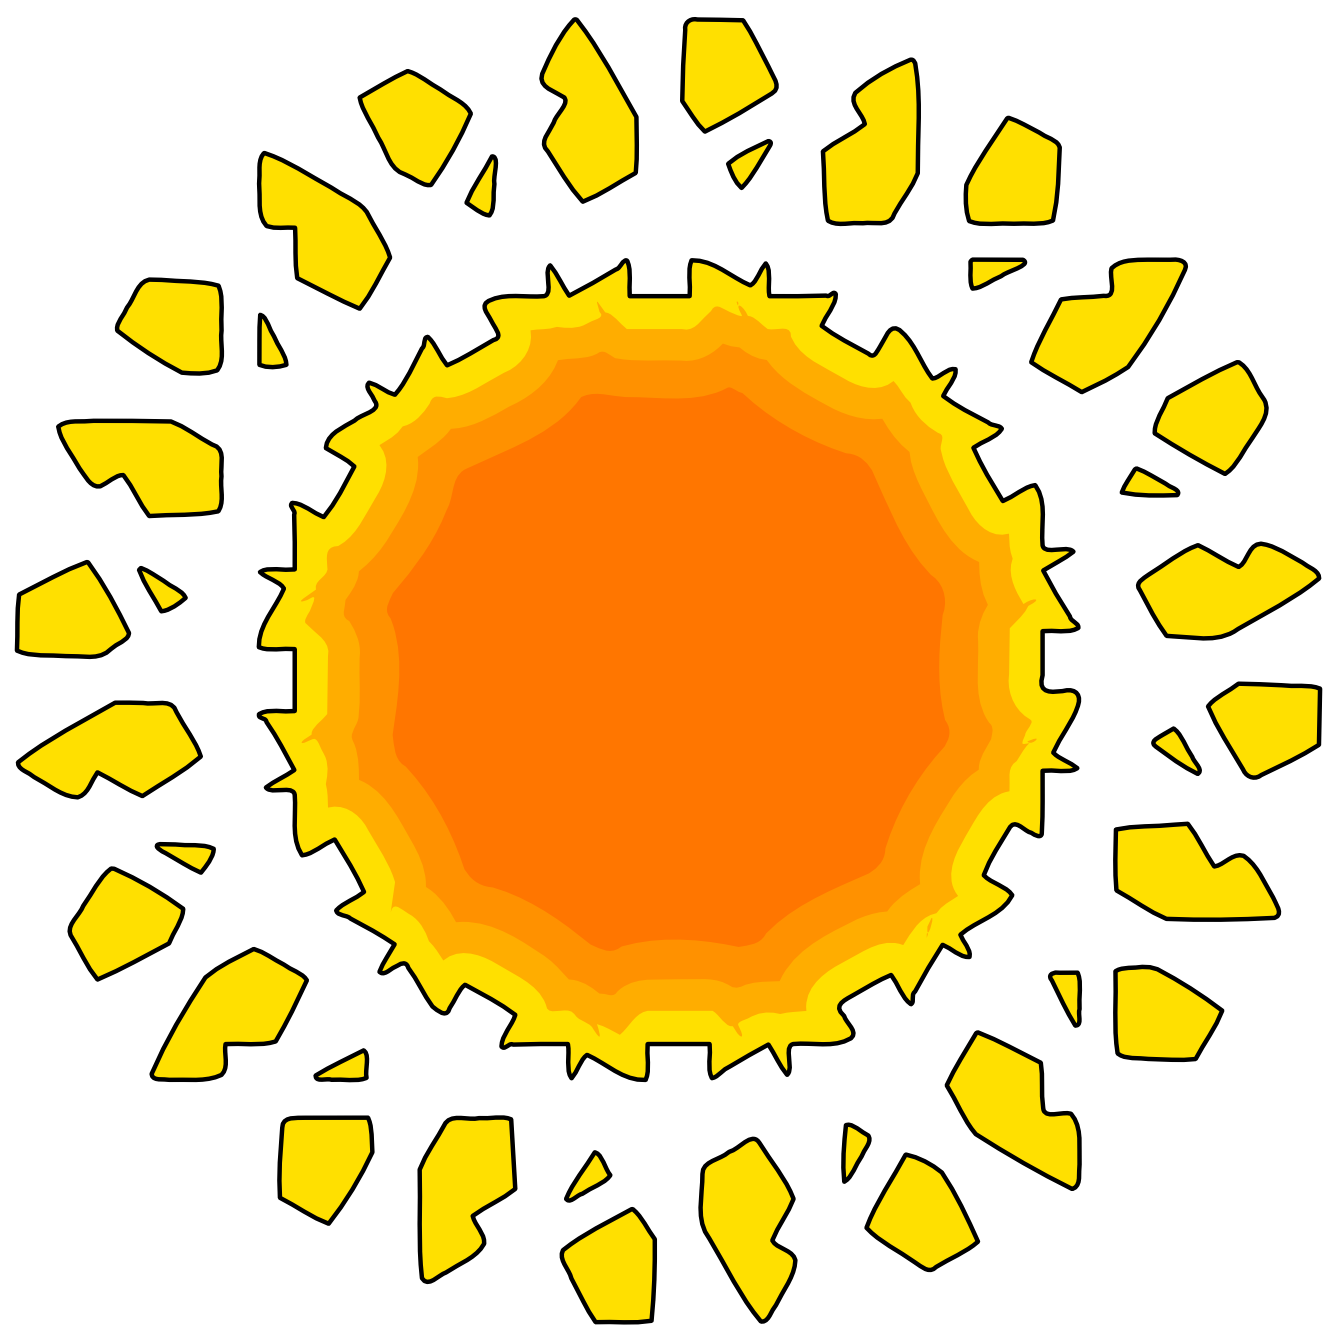 Sunshine free sun clipart public domain sun clip art images and 8